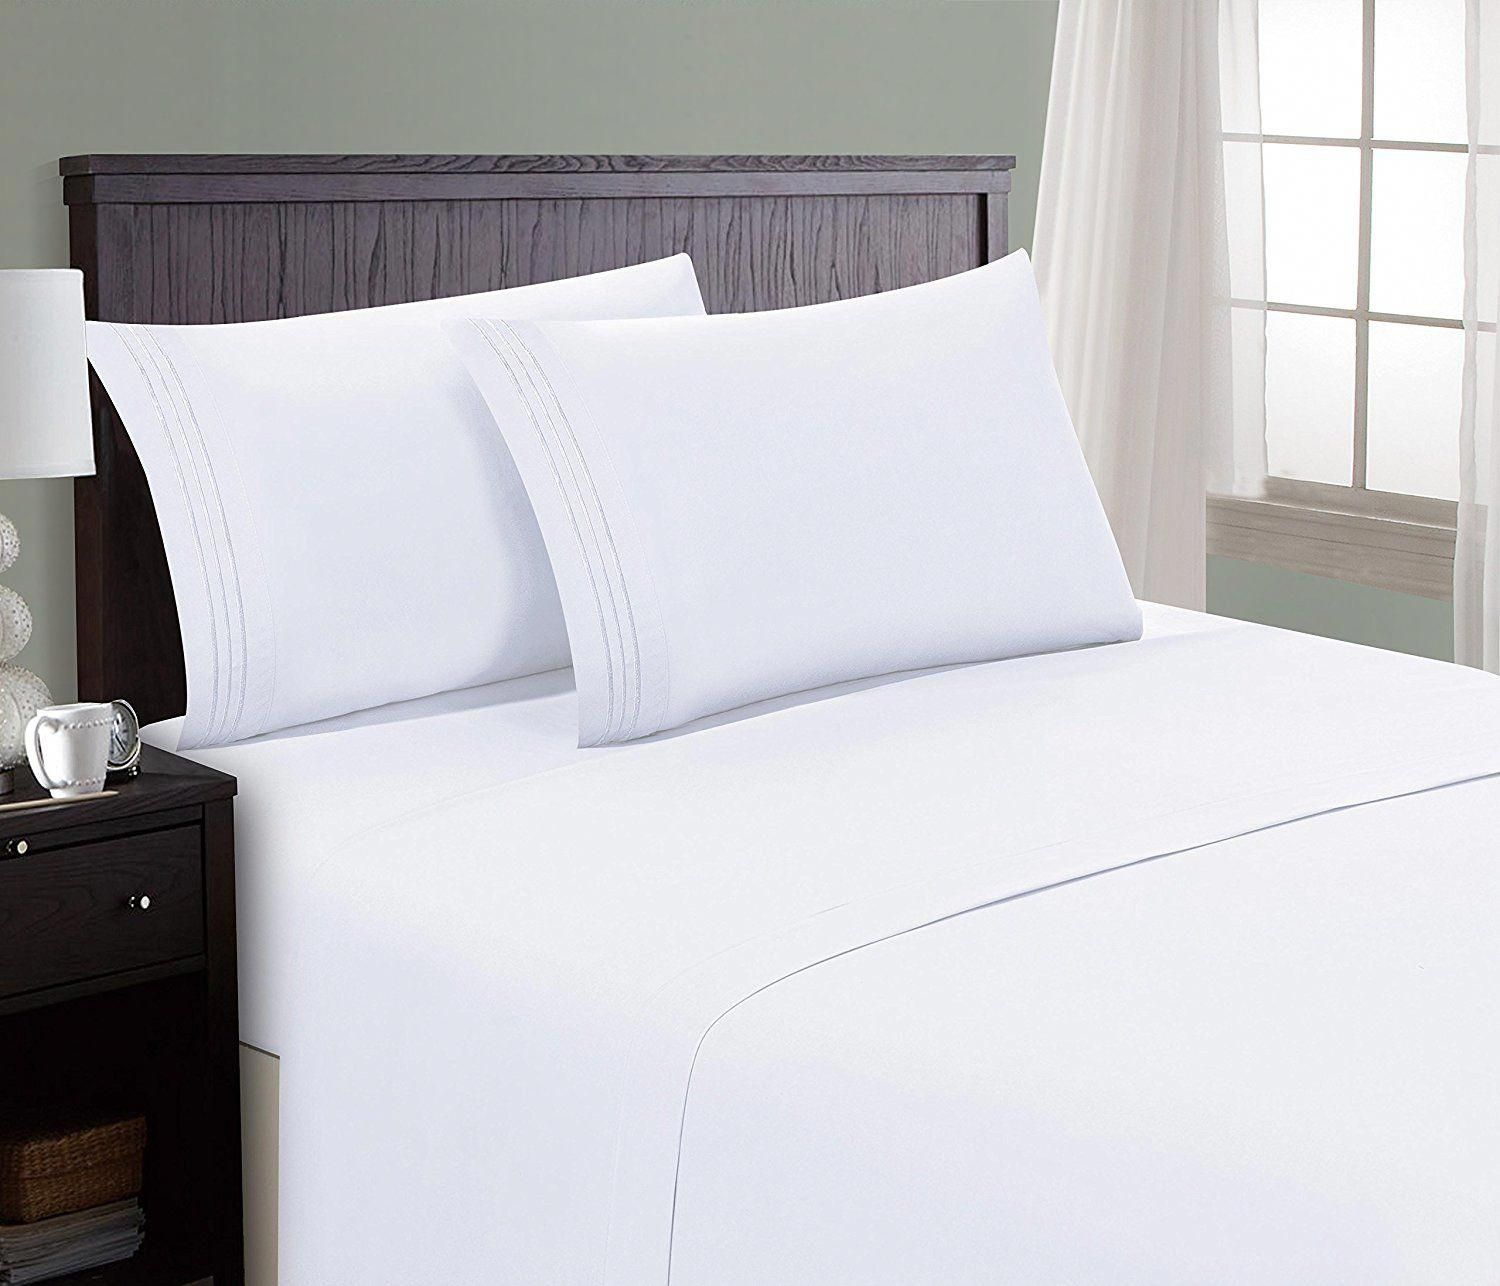 Hc Collection Bed Sheet Pillowcase Set Hotel Luxury 1800 Series Egyptian Quality Bedding Bedlinenbrand